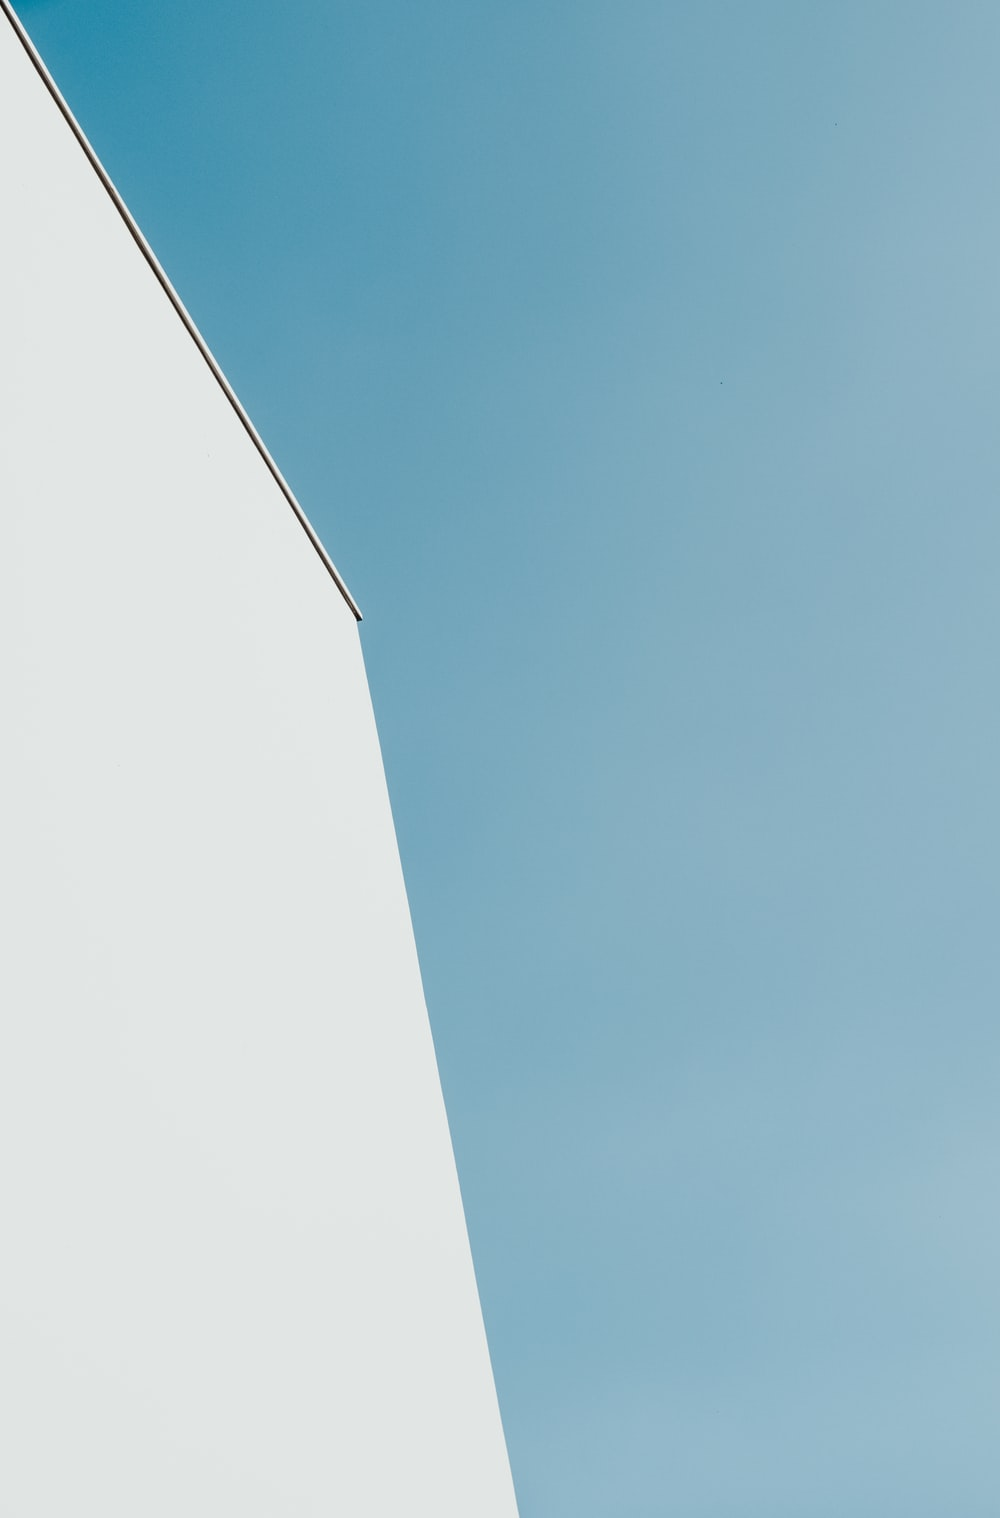 white concrete building under teal sky